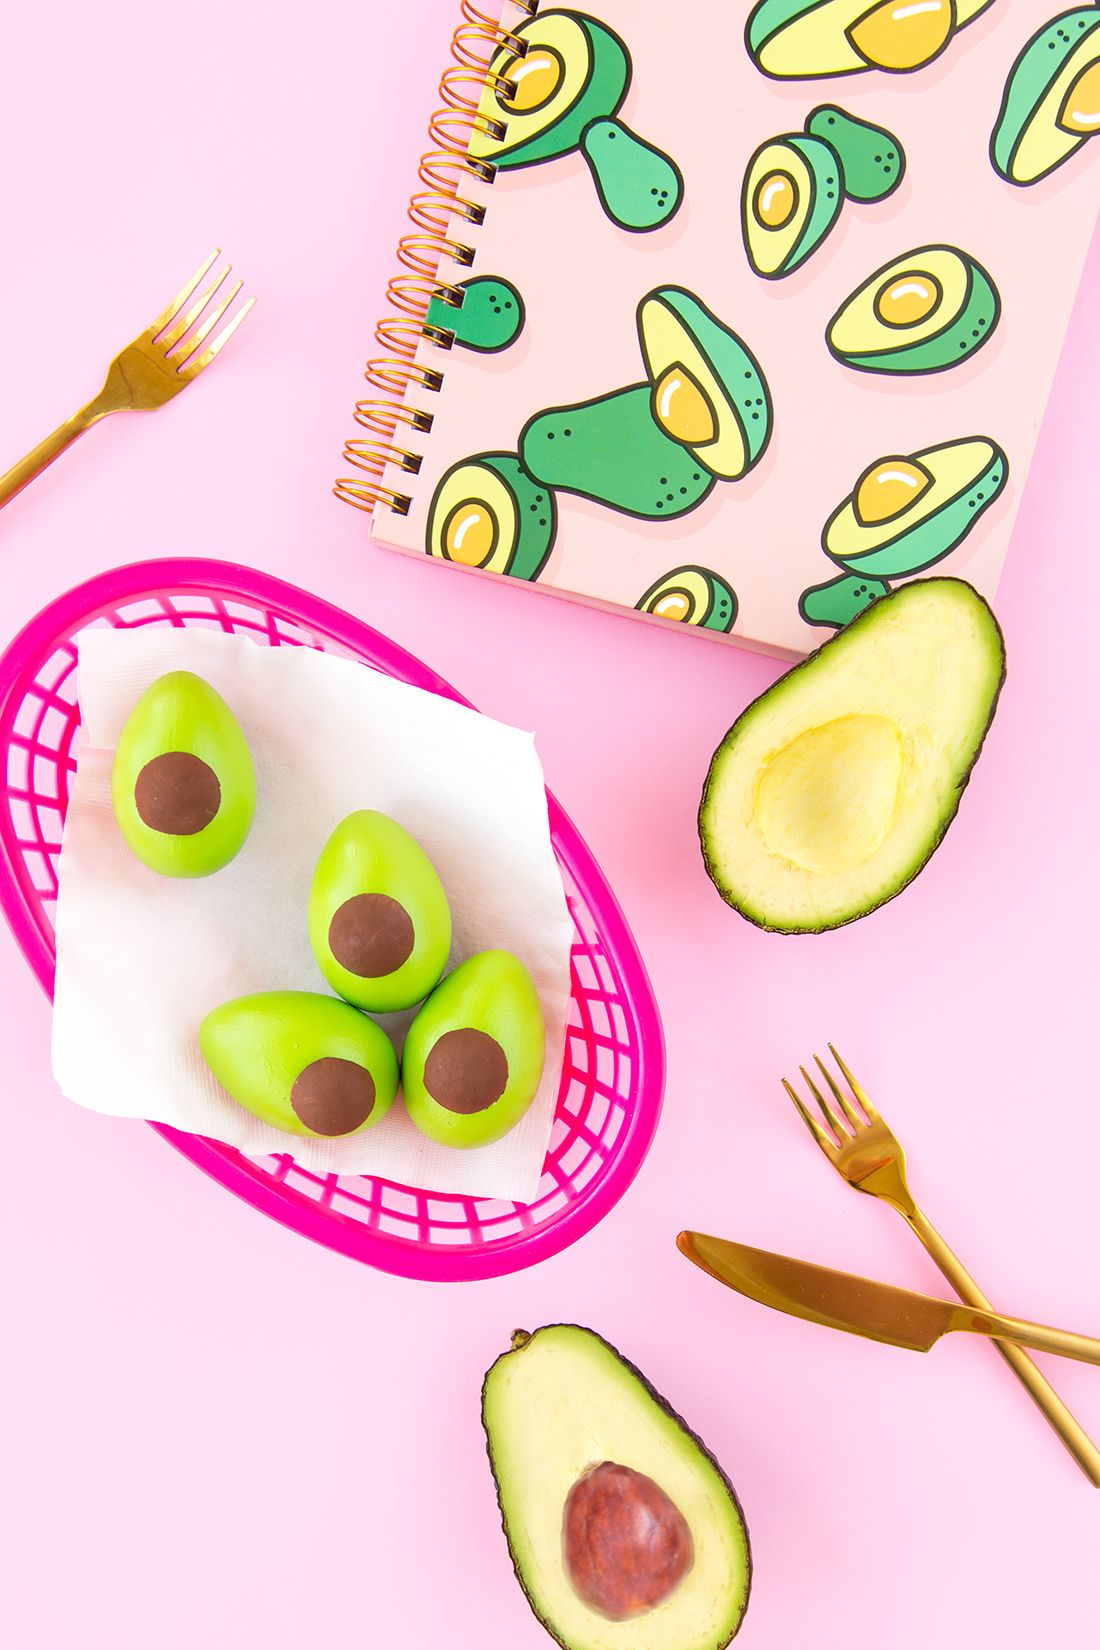 Best 2020 Craft Ideas Beyond Just Delicious Treats: 15 Best Avocado Themed Crafts | DIY